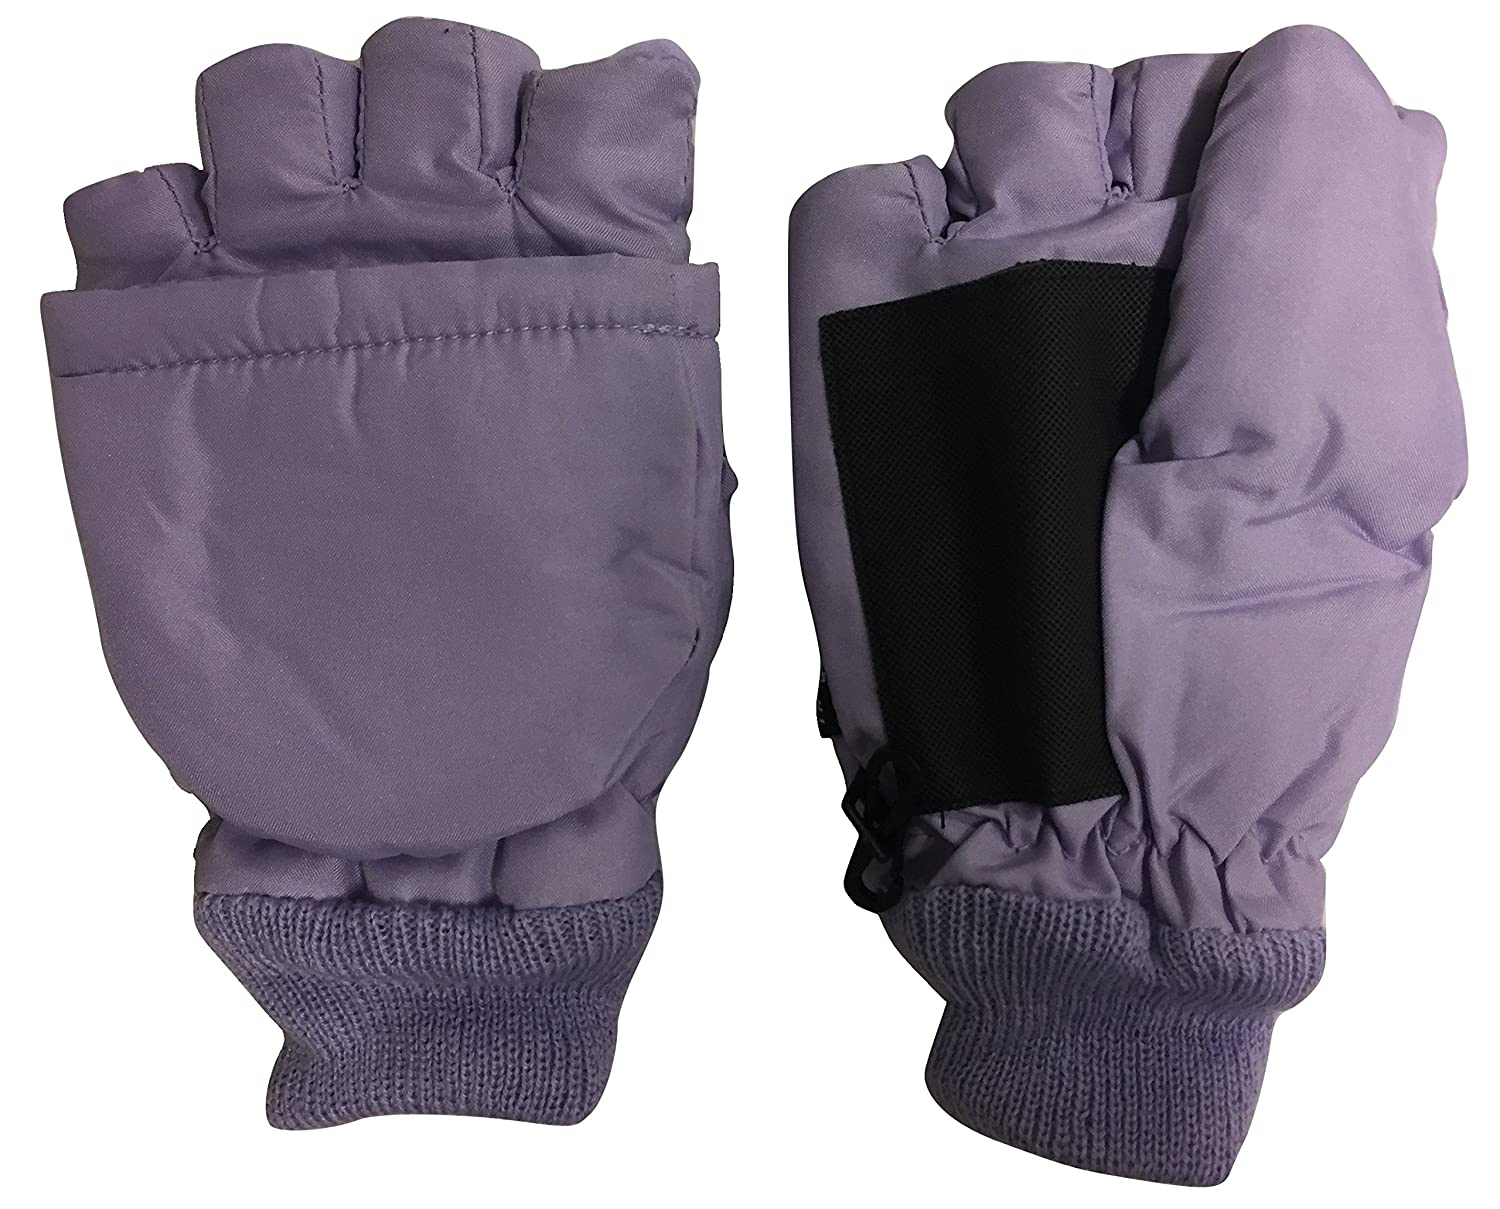 Thinsulate Youth Winter Paradise Convertible Fingerless Gloves with Mitten Cover Purple)